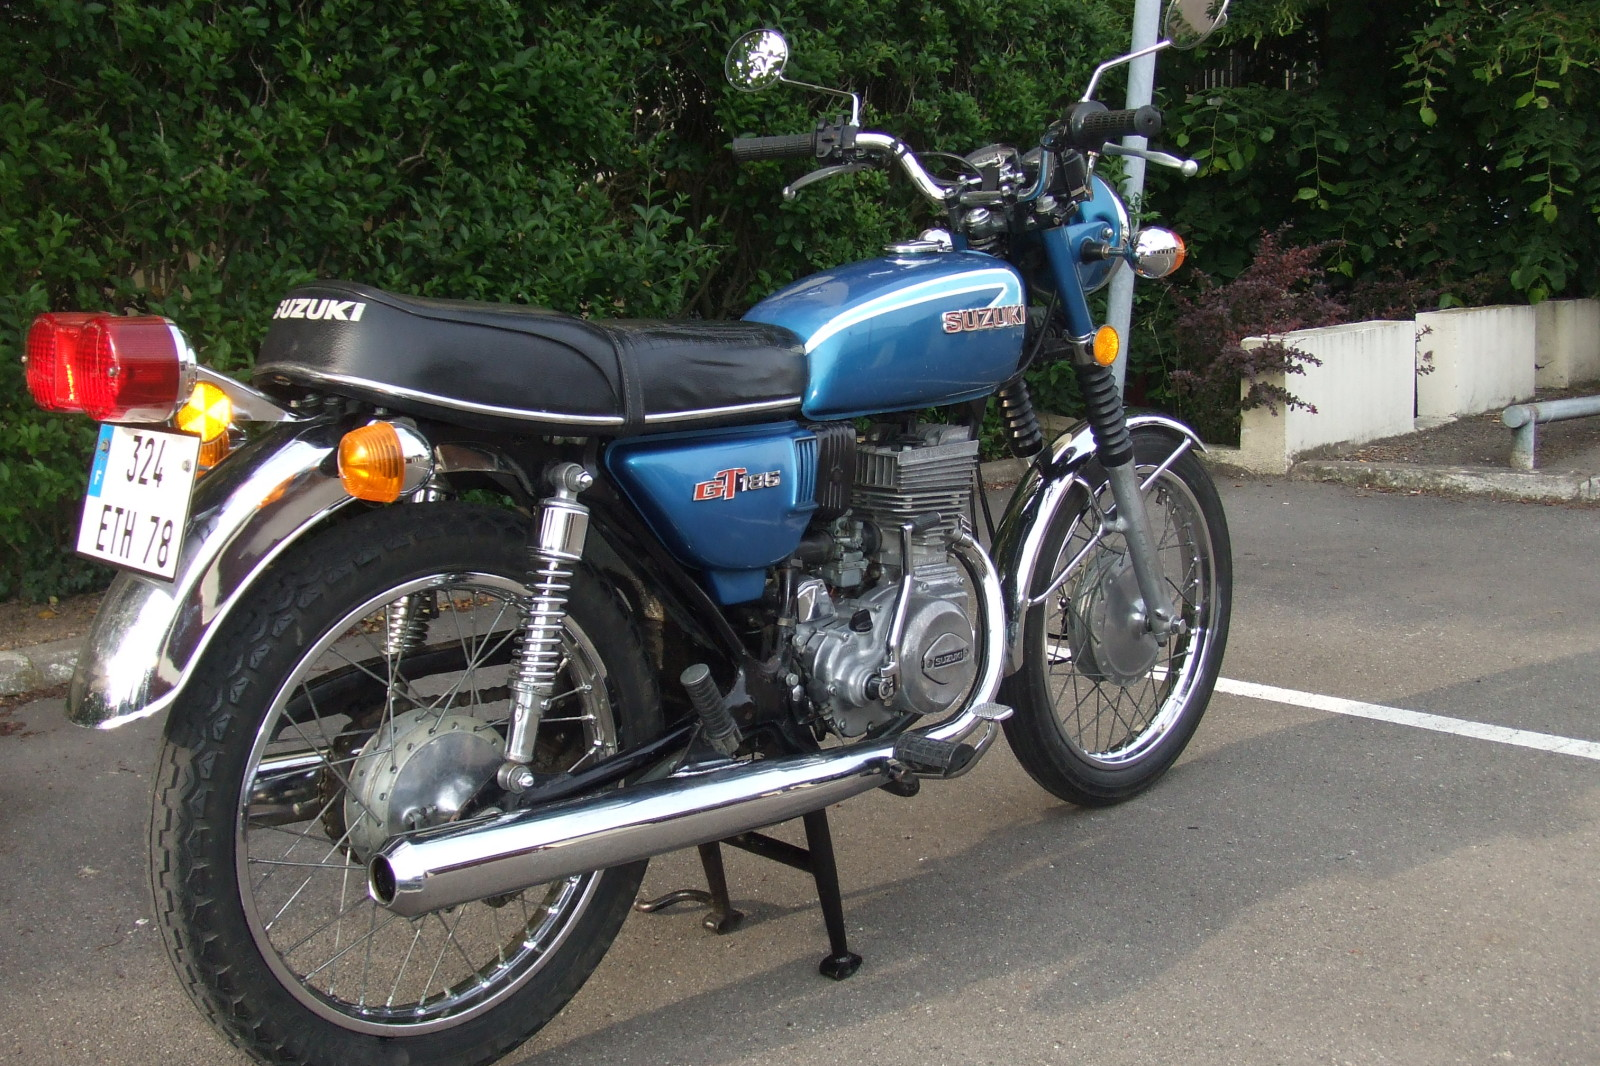 1975 suzuki gt 125 pics specs and information. Black Bedroom Furniture Sets. Home Design Ideas